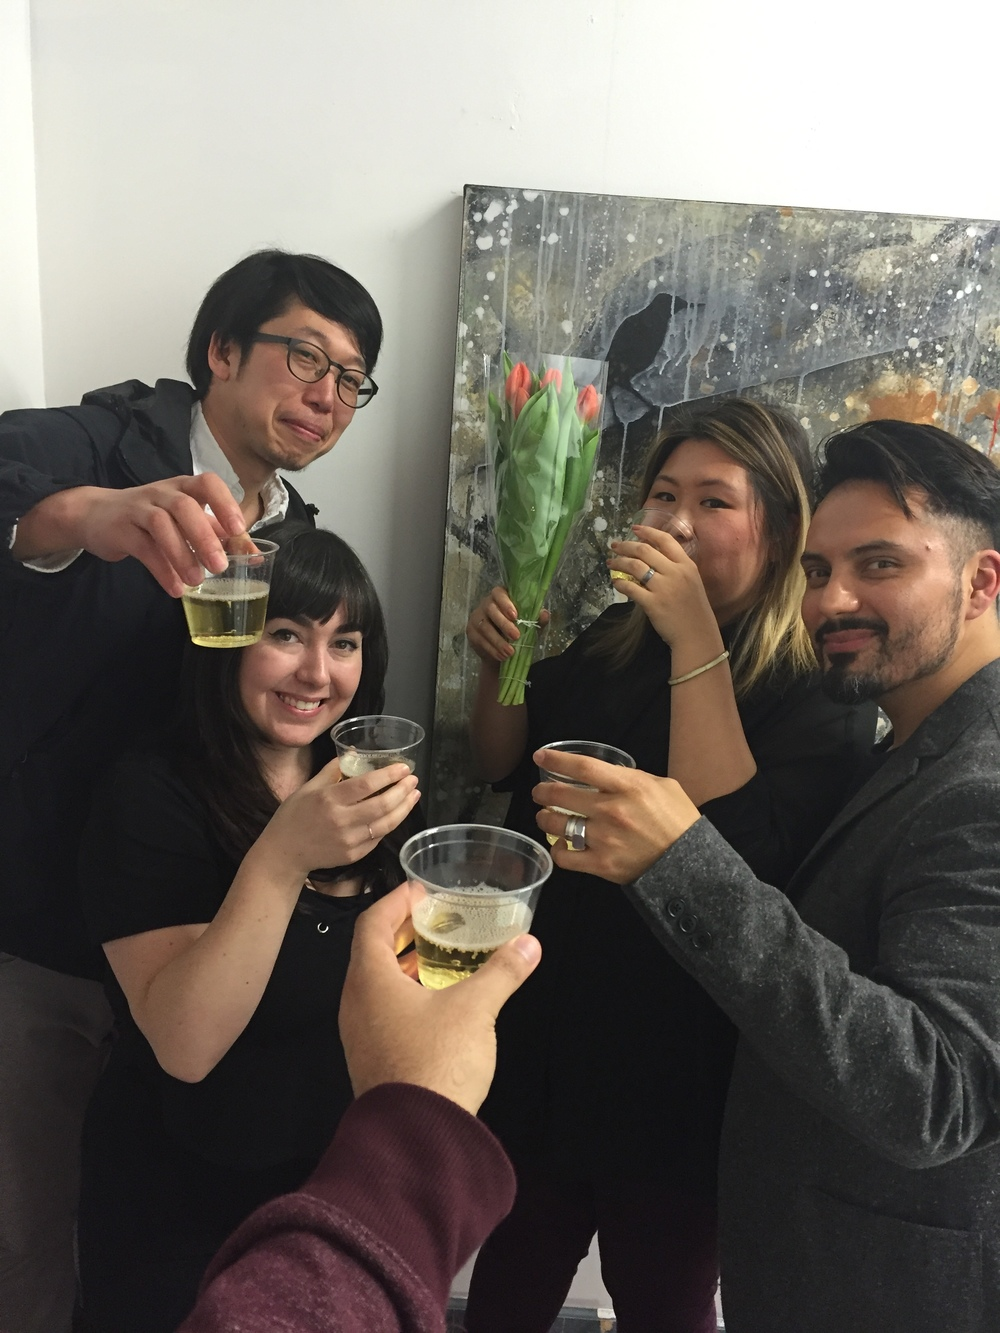 Toast at the opening!